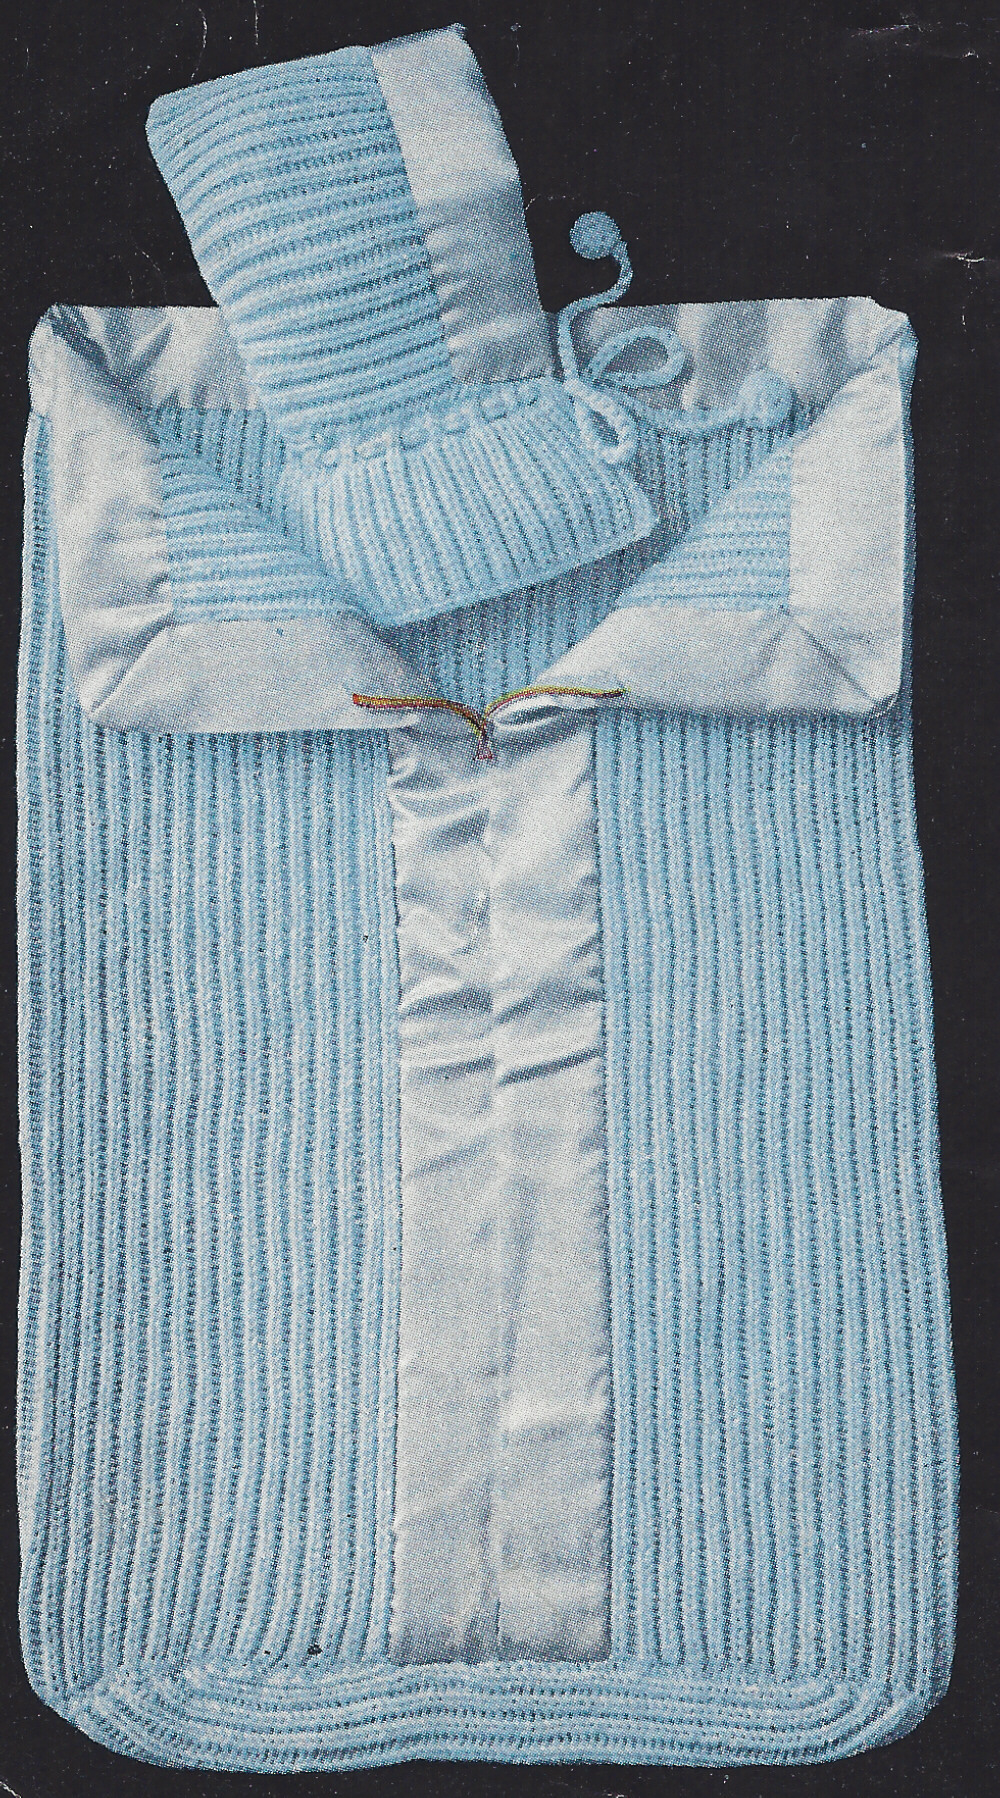 Knitting Pattern Sleeping Bag Baby : Vintage Knitting PATTERN to make Baby Sleeping Bag Zipper ...